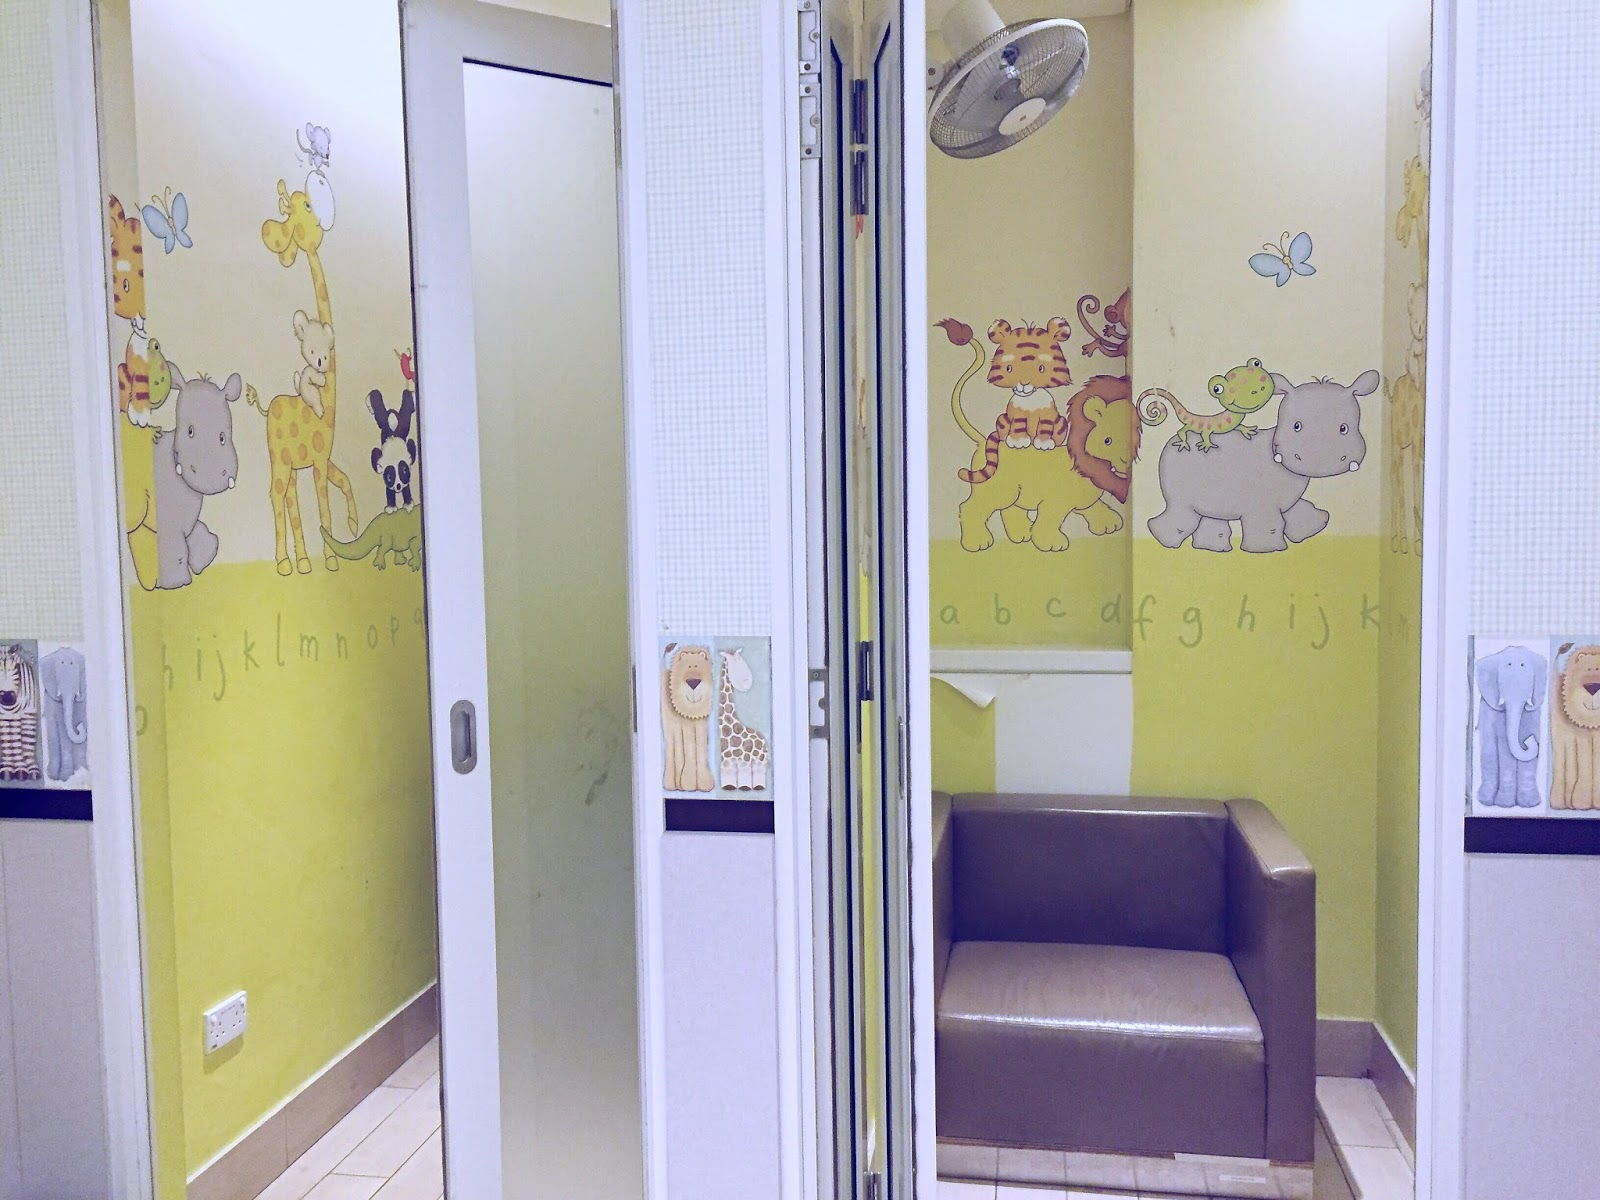 Infant Stroller Singapore Bedok Mall Nursing Room Baby Room Location Travel With